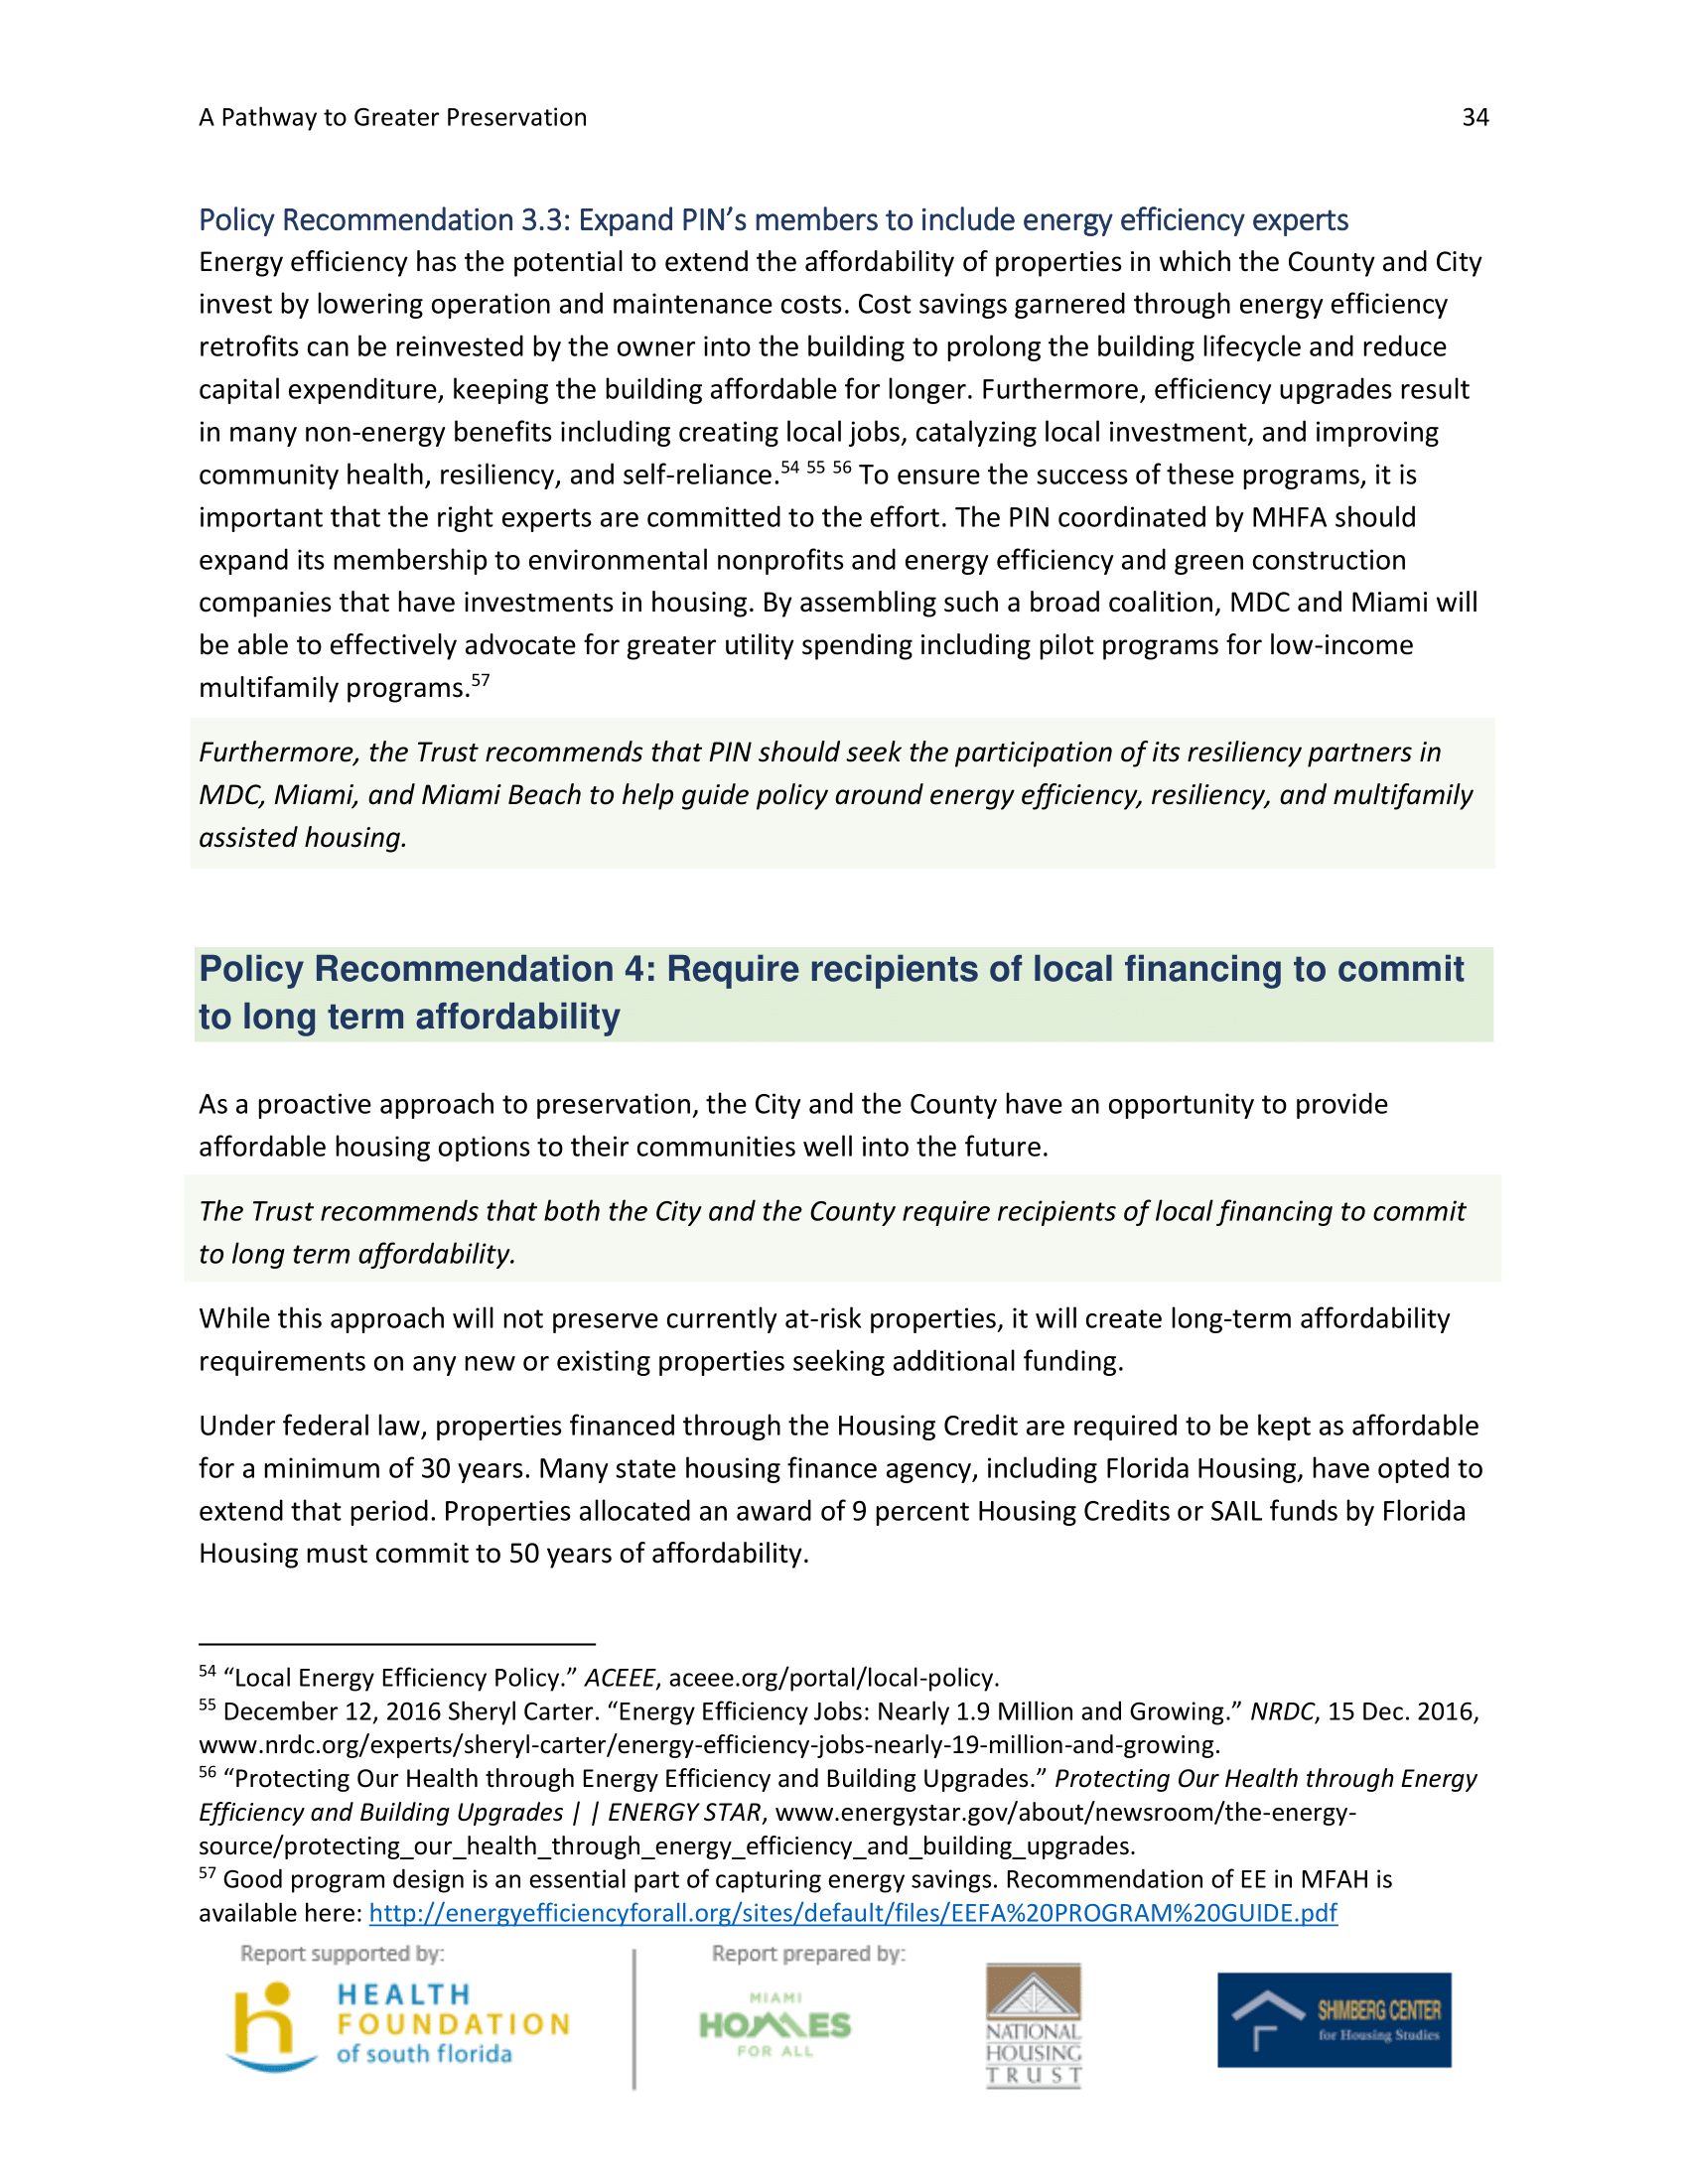 A Pathway to Greater Preservation - February 2018-42.png